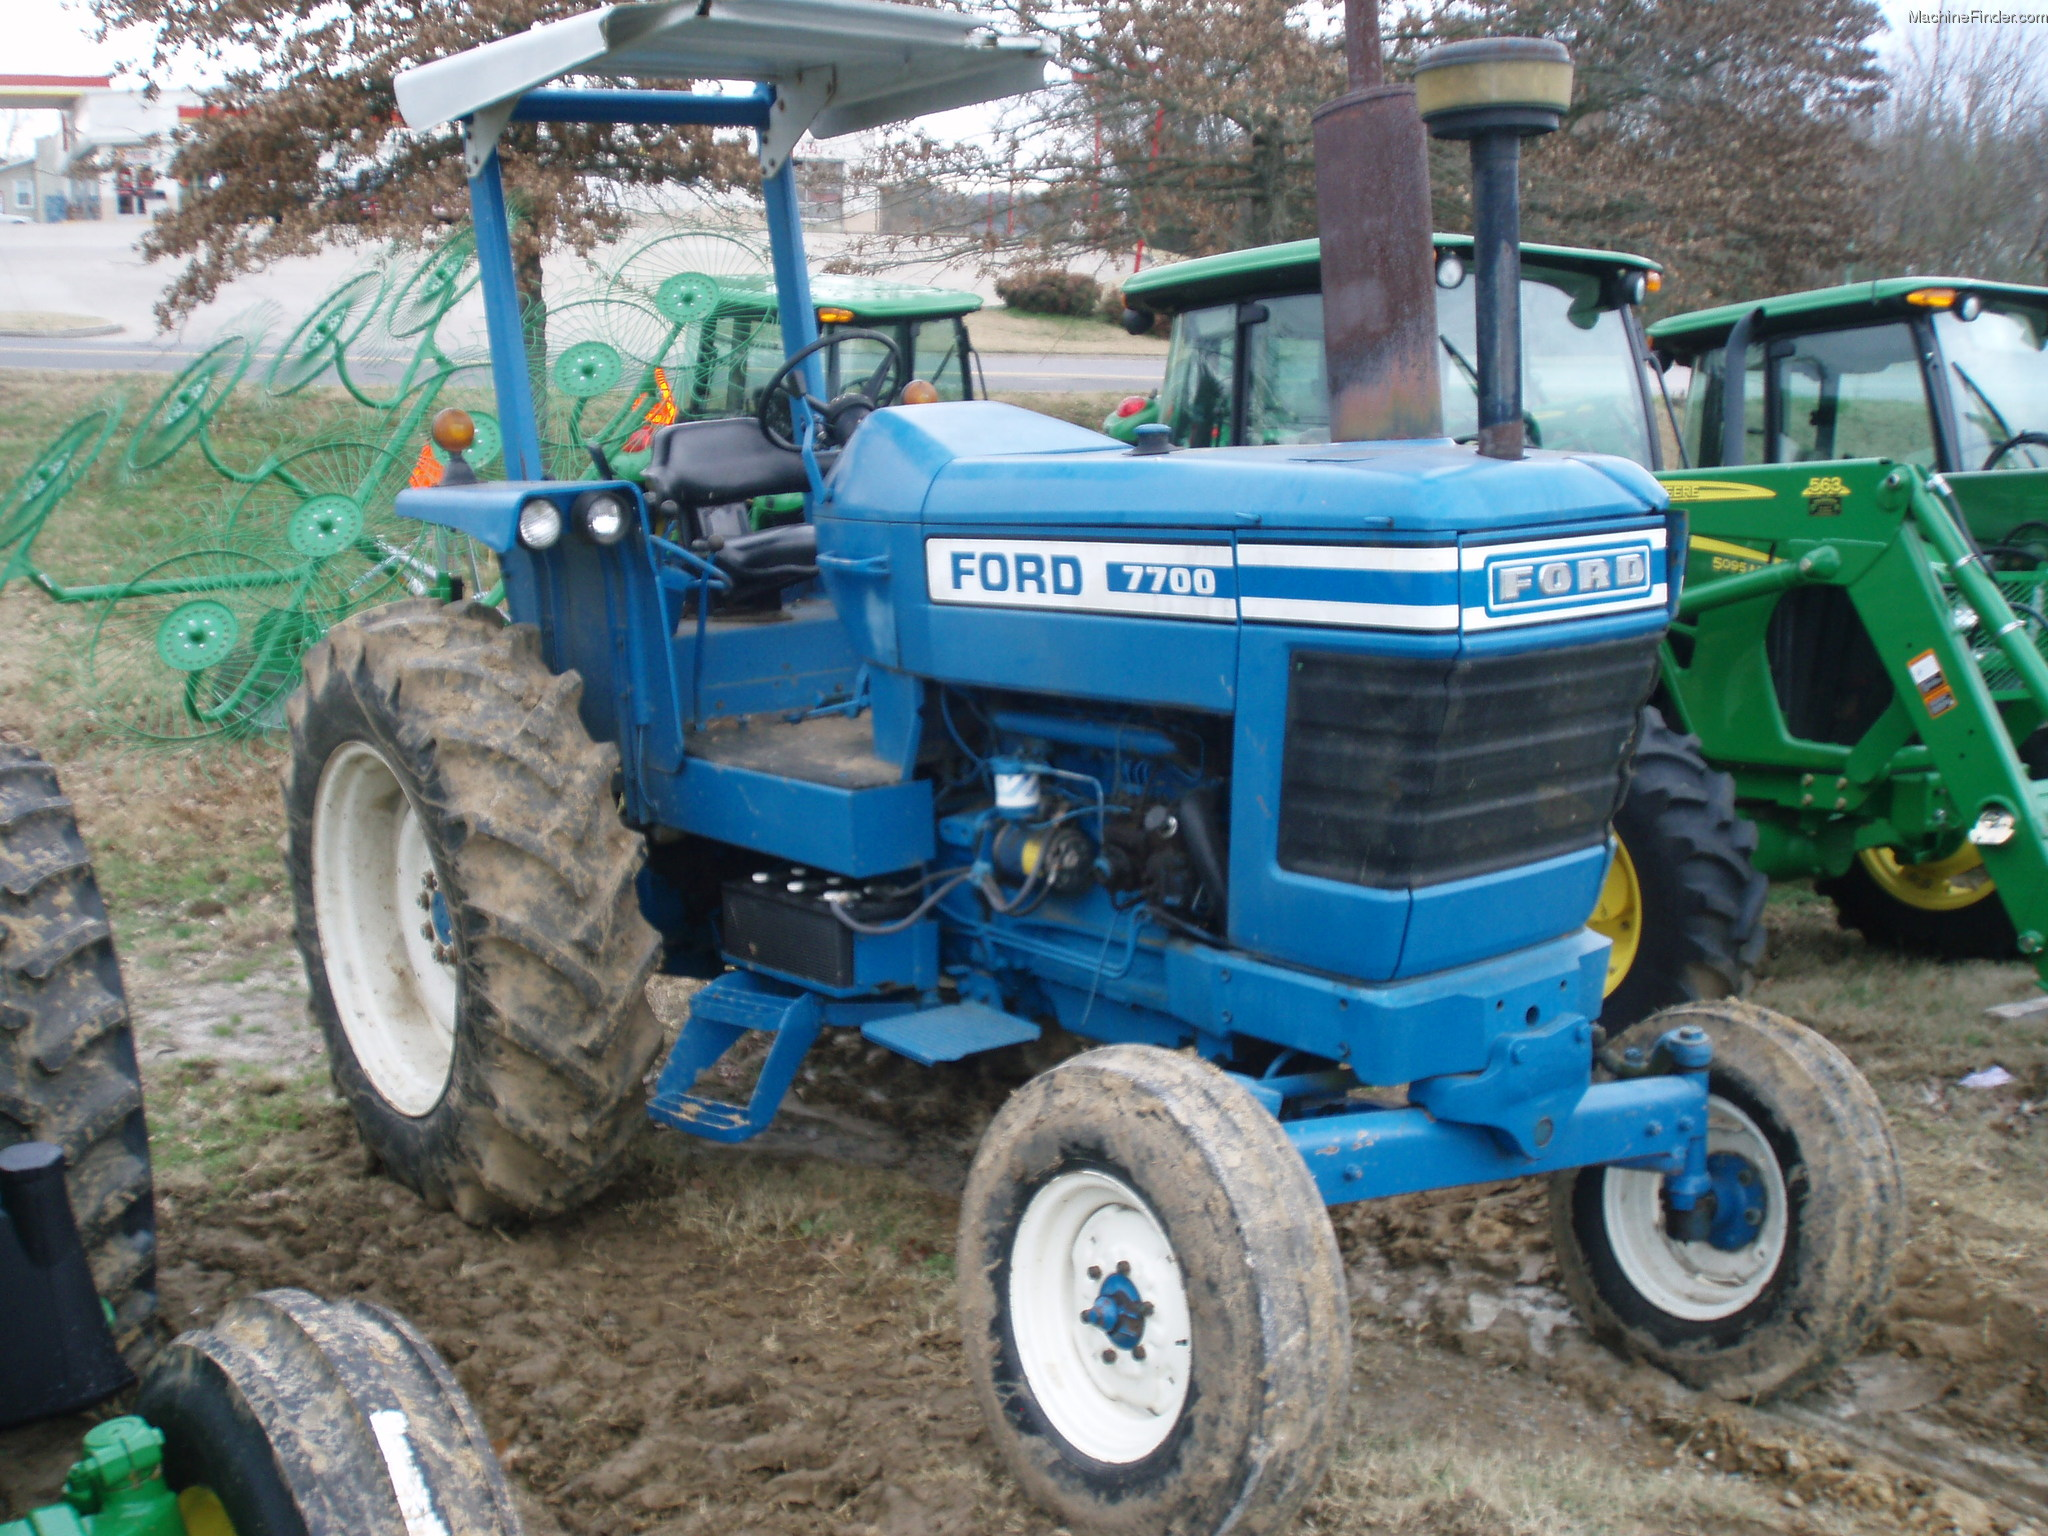 Ford Tractor Sayings : Ford tractor horsepower